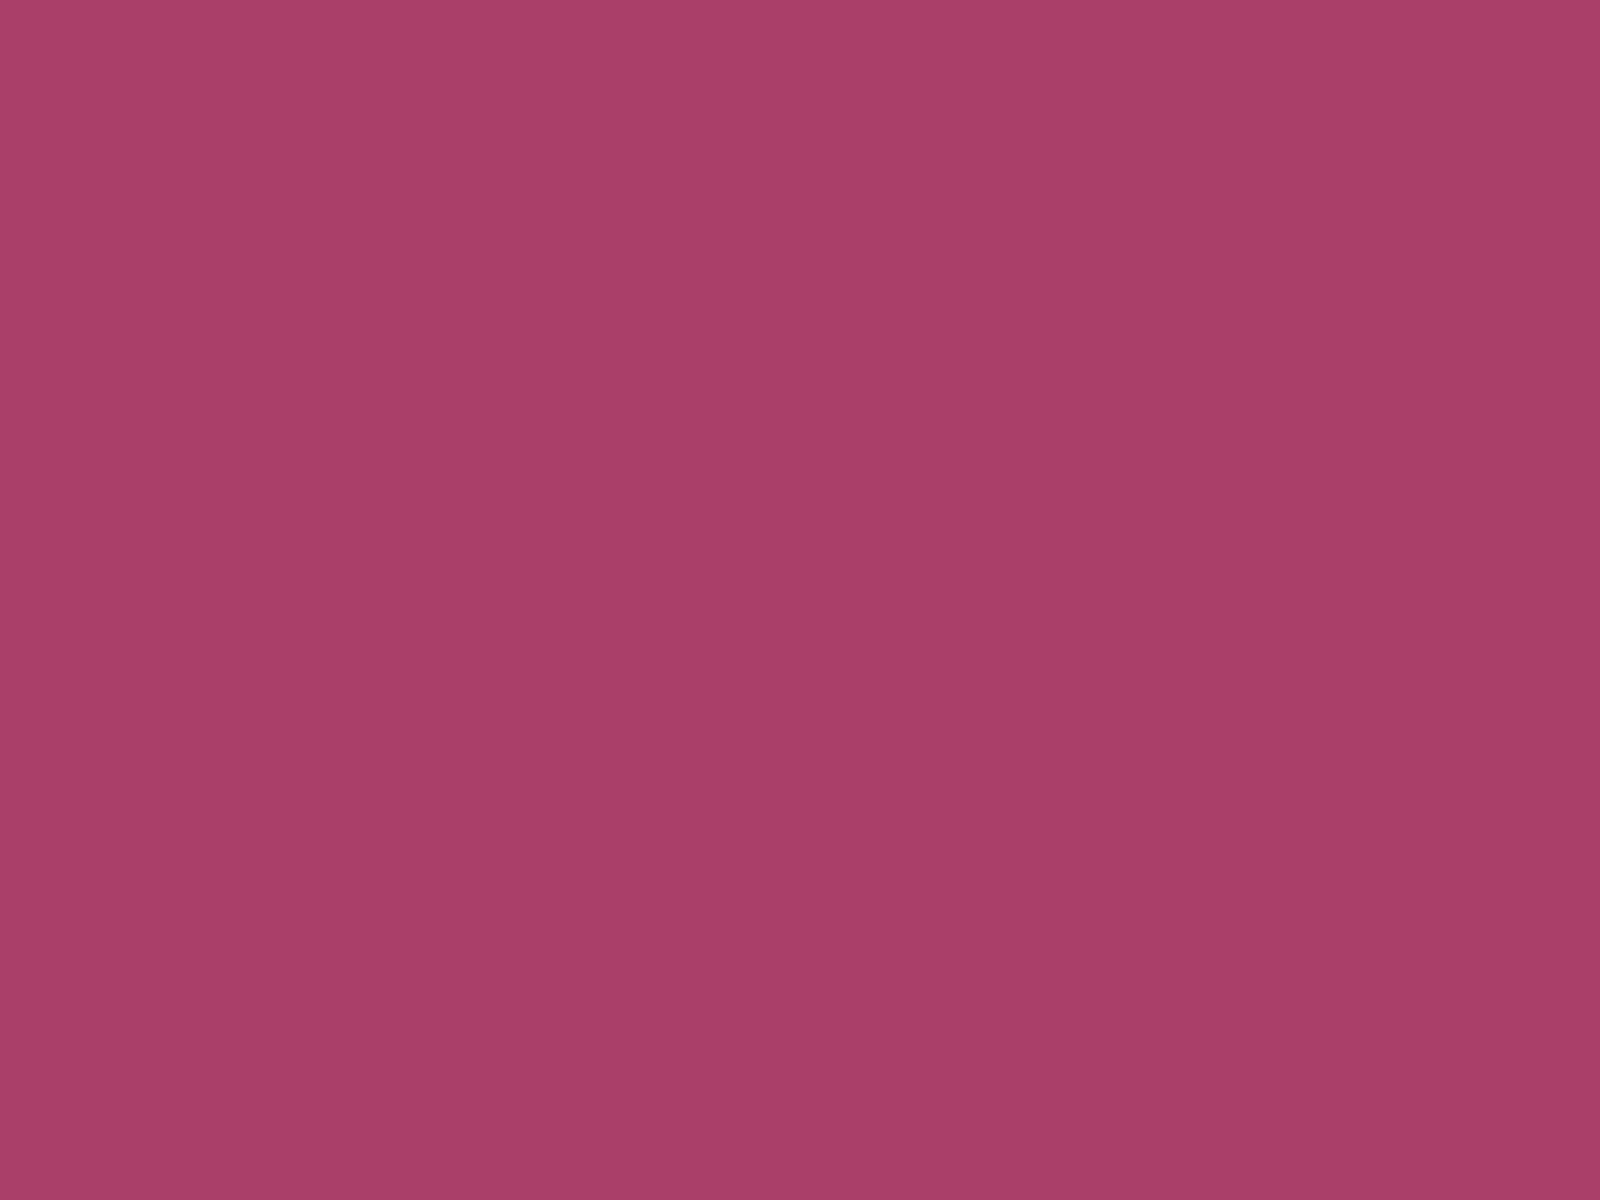 1600x1200 Medium Ruby Solid Color Background